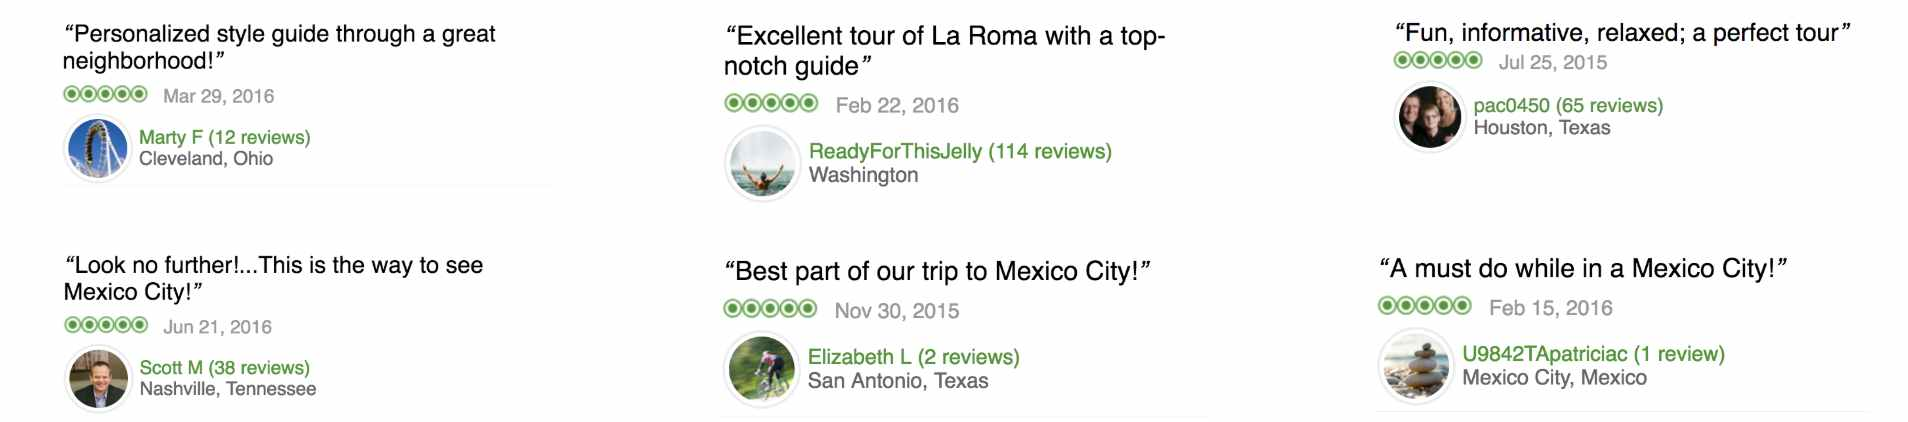 see the stylewalk reviews on tripadvisor